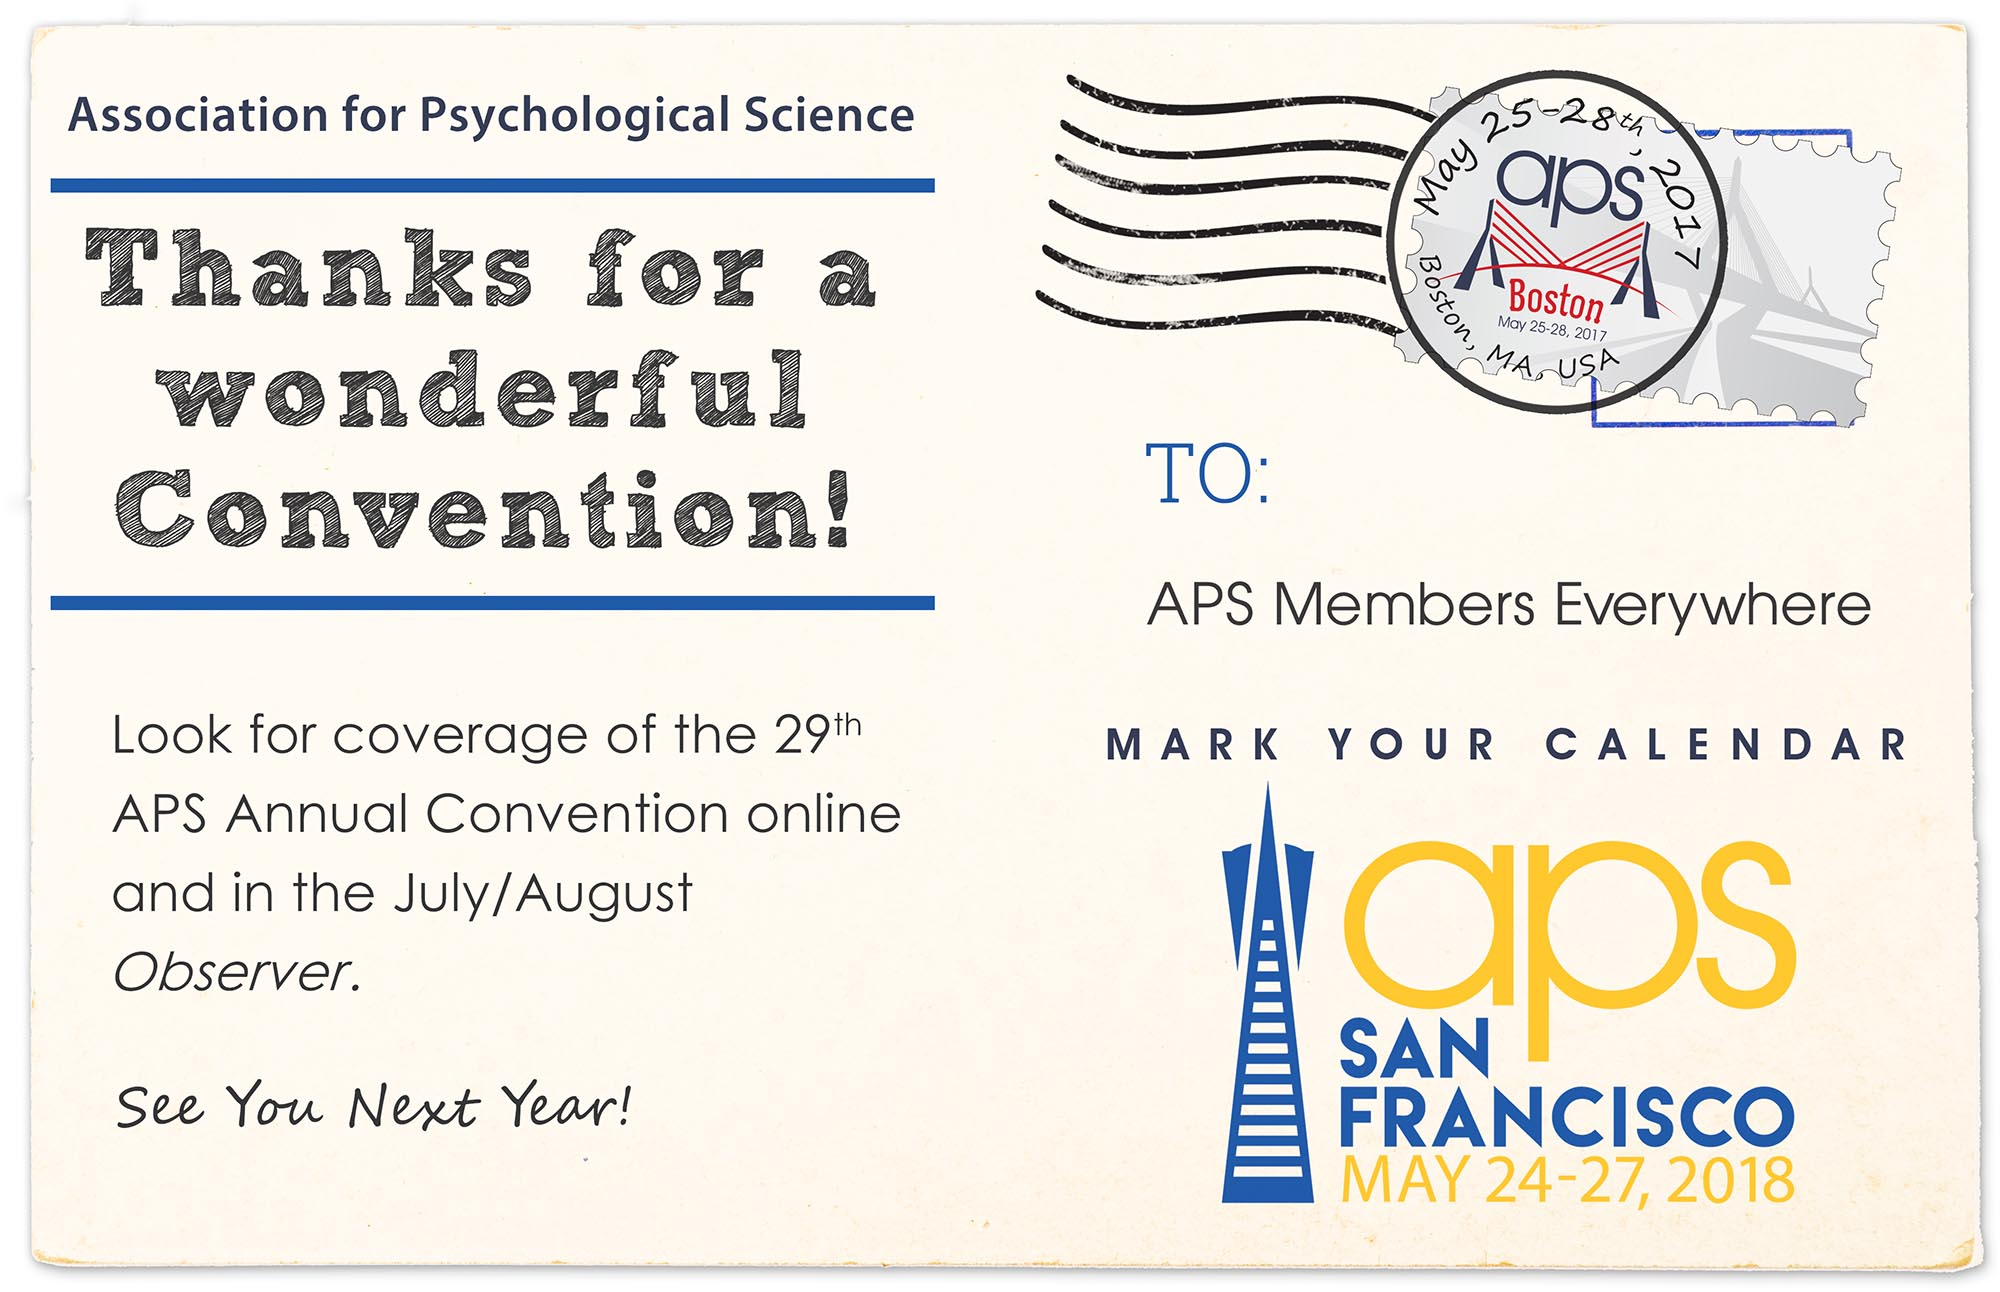 Postcard graphic thanking attendees for attending the 29th Annual APS Convention.